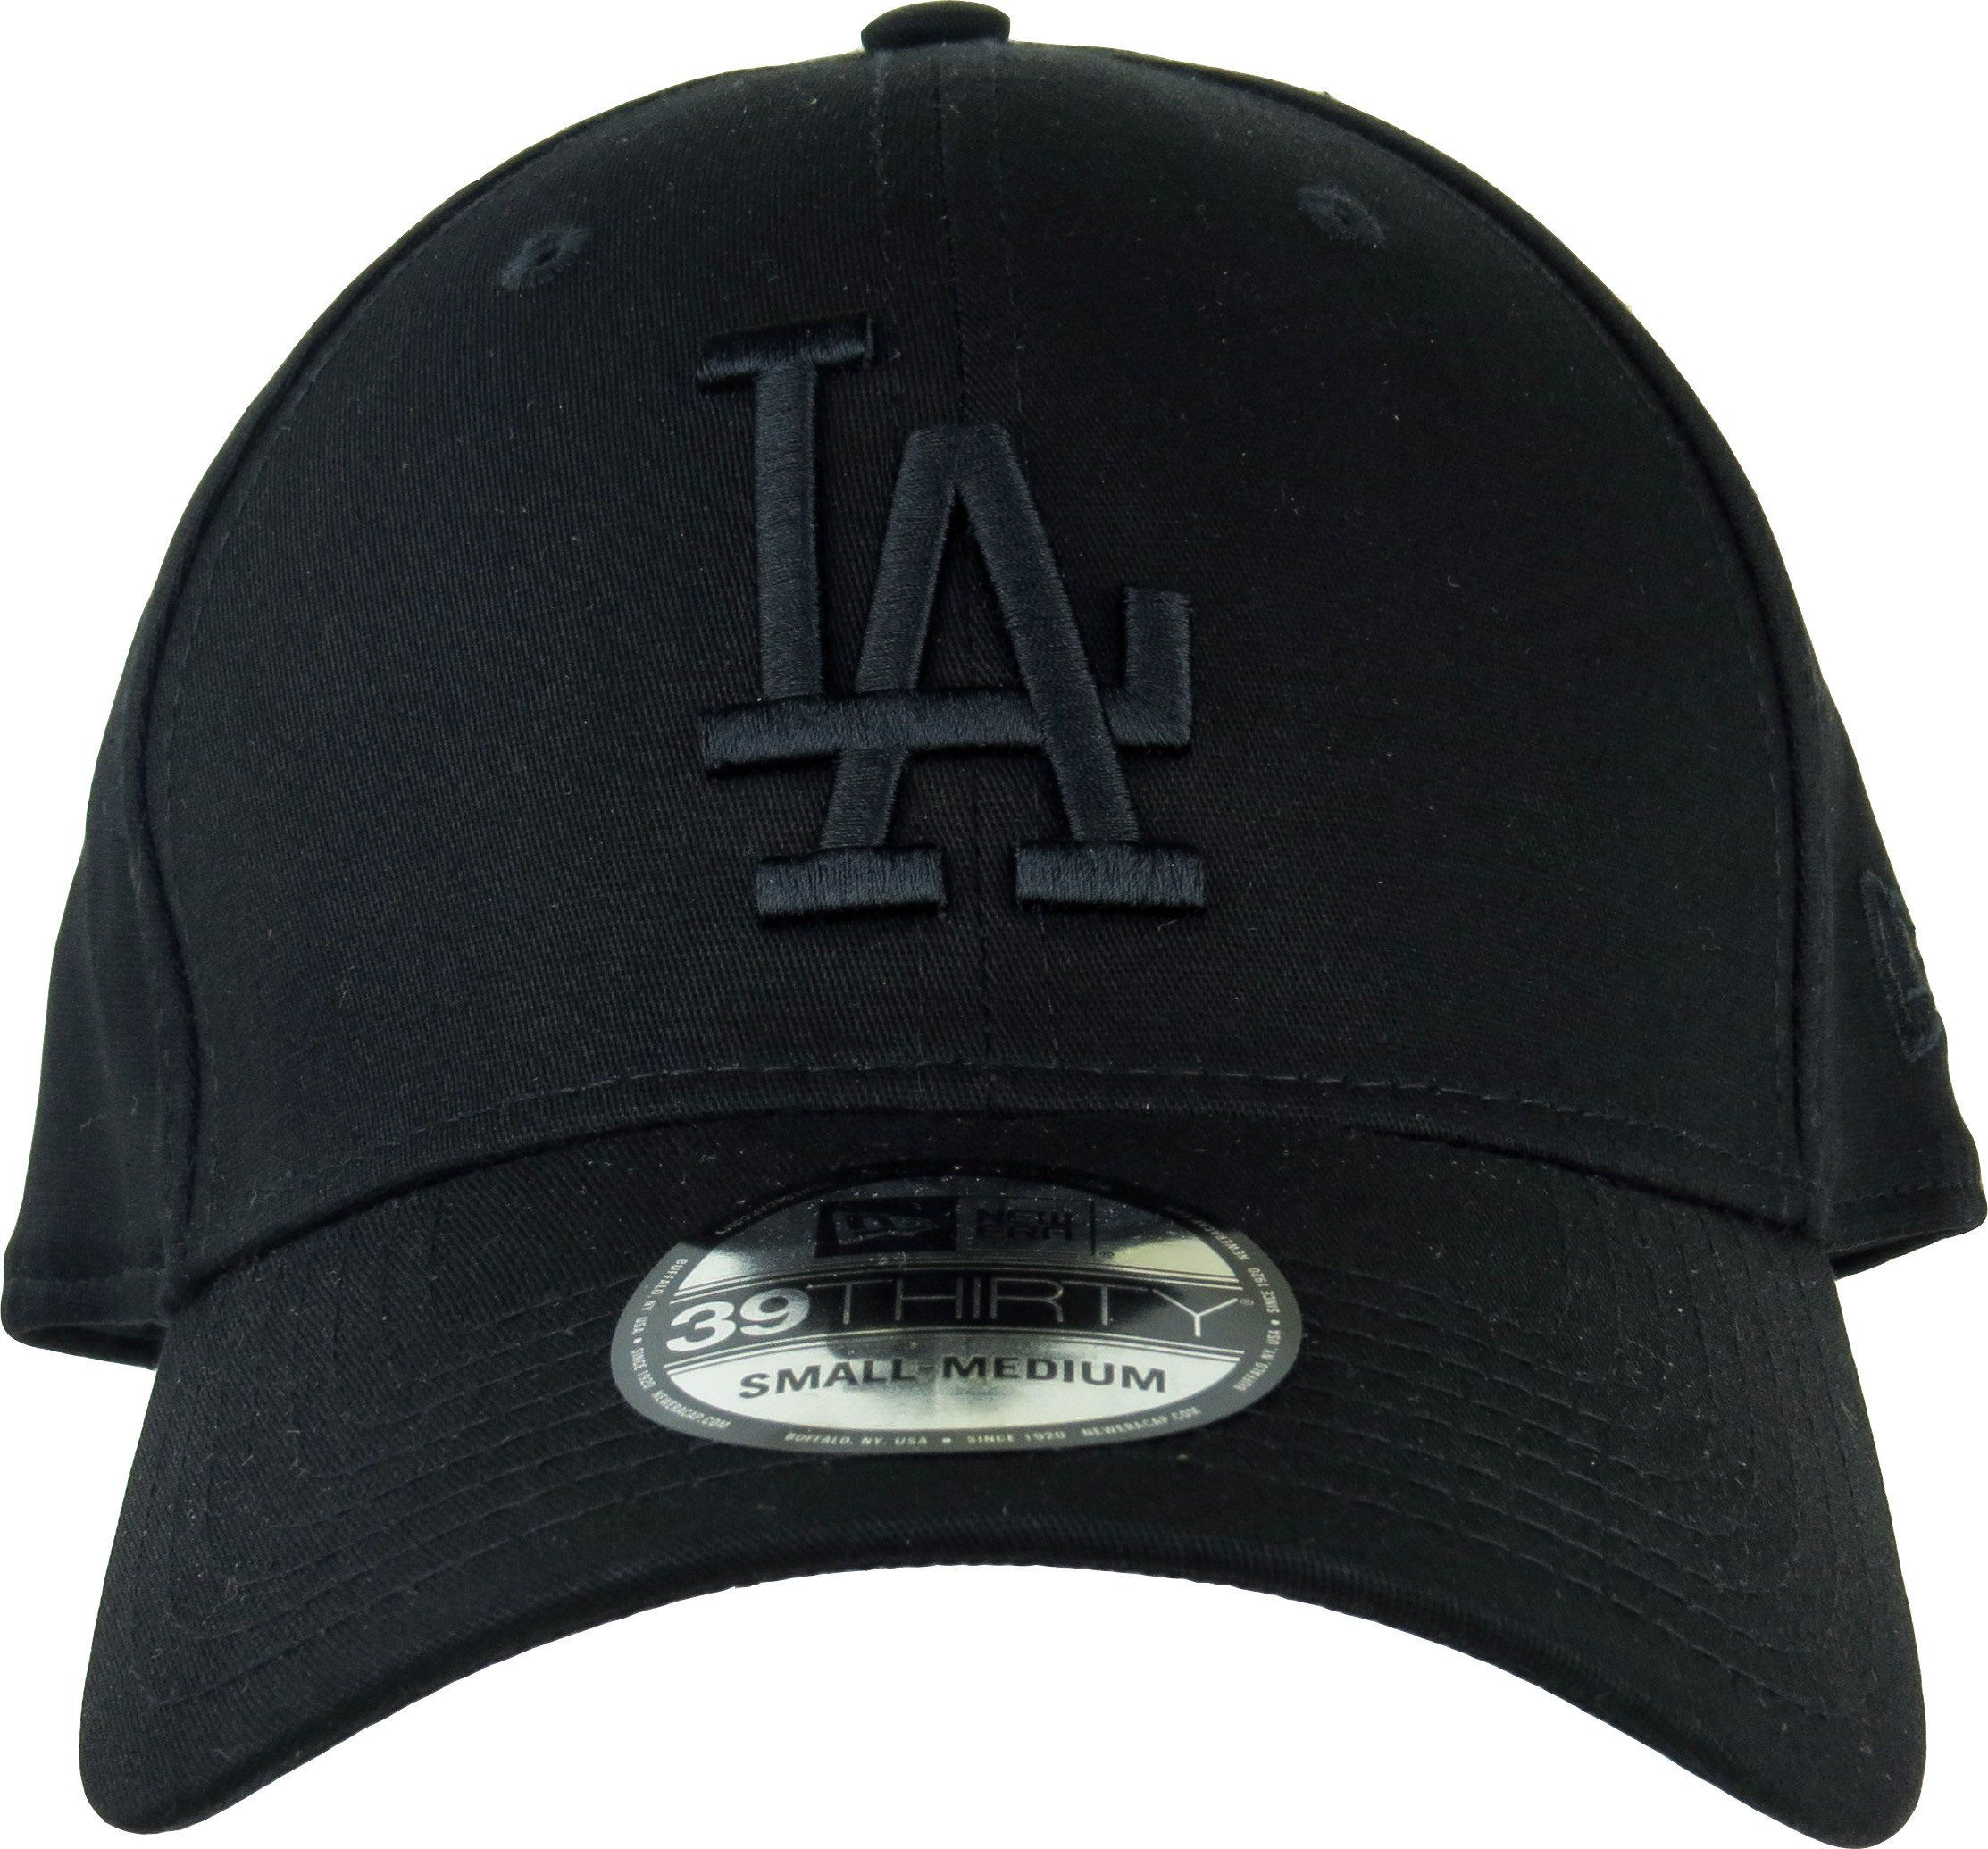 199cf1ead New Era 39Thirty Los Angeles Dodgers League Essential Baseball Cap. Black,  with Black LA front logo, and New Era side logo. Stretch fit cap, available  in 3 ...